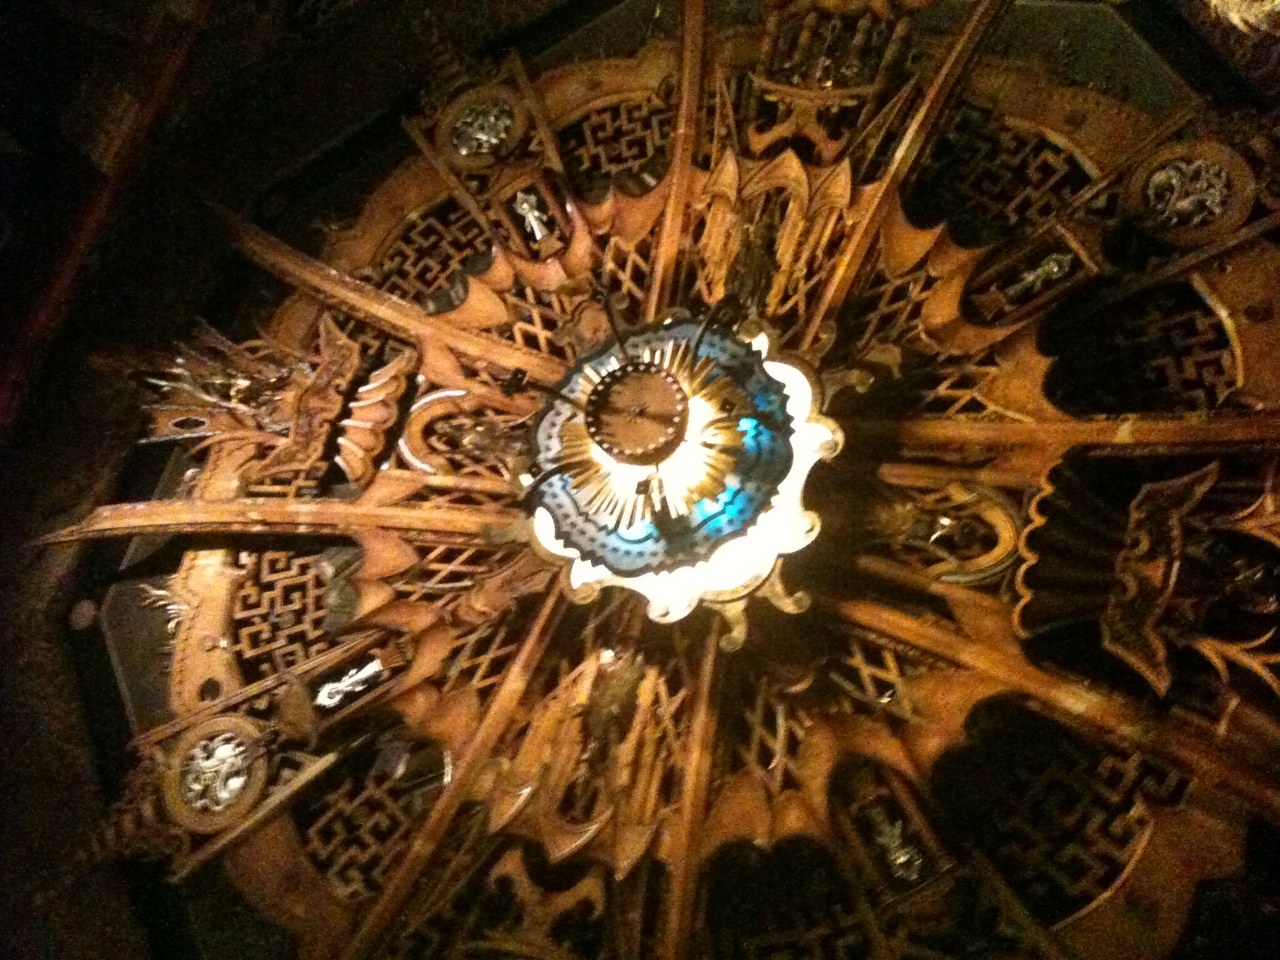 Historical Ceiling of Groman's Chinese Theatre in Hollywood